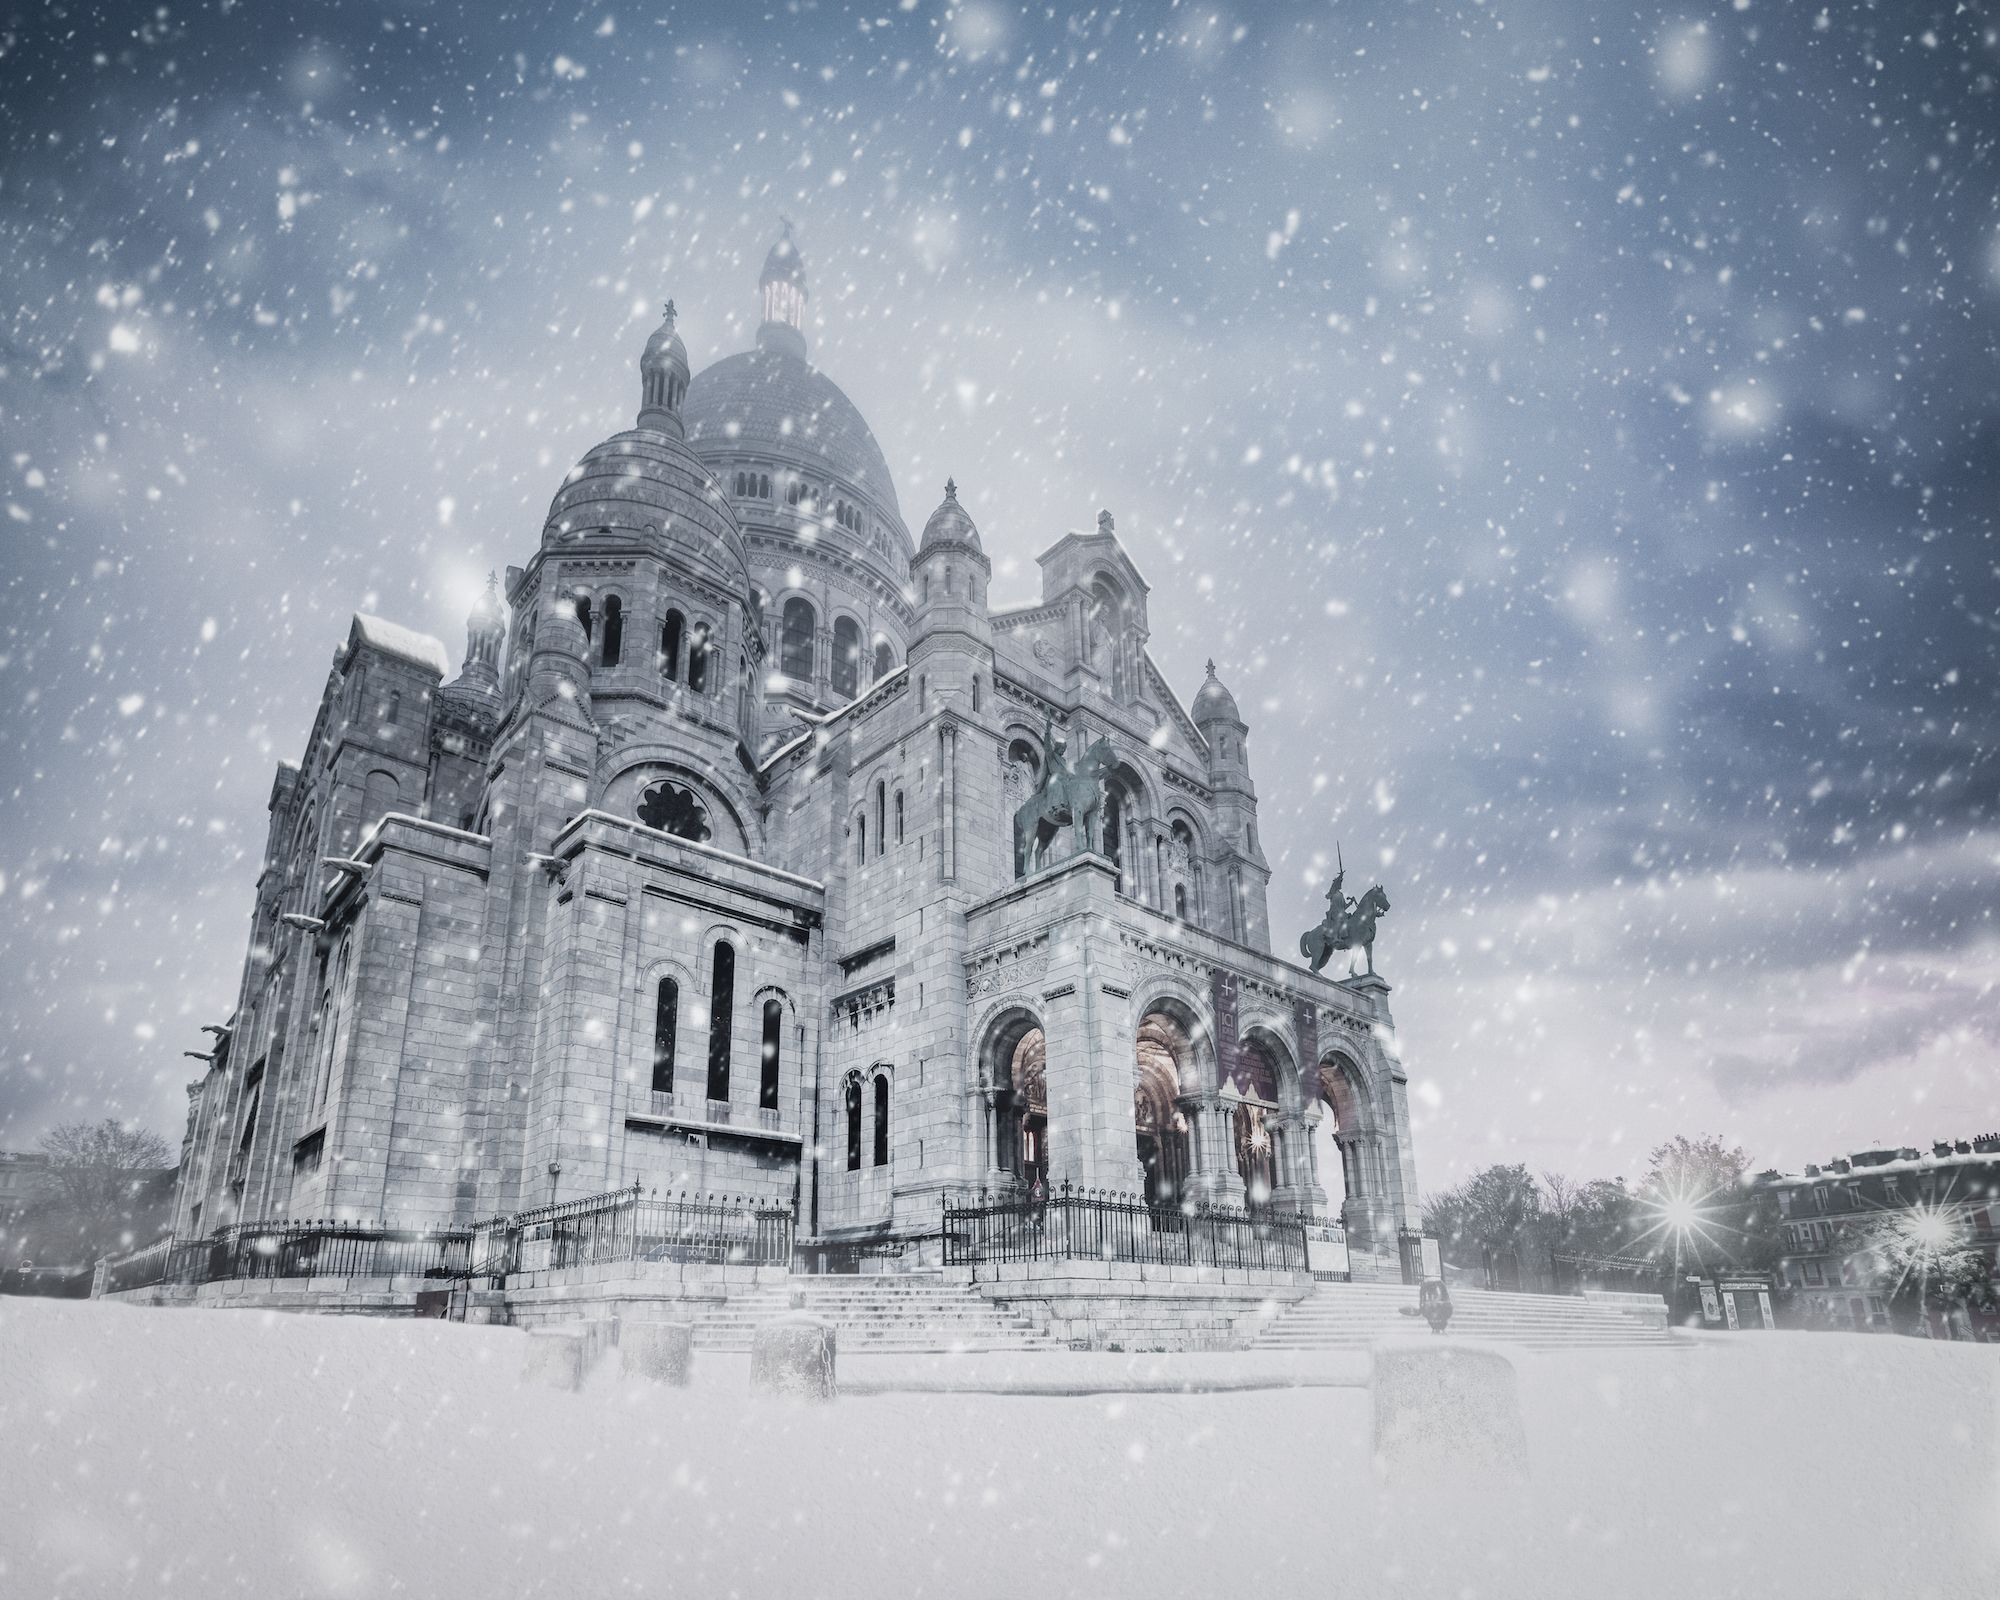 15 Famous Landmarks Covered In Snow - Best Travel Photography